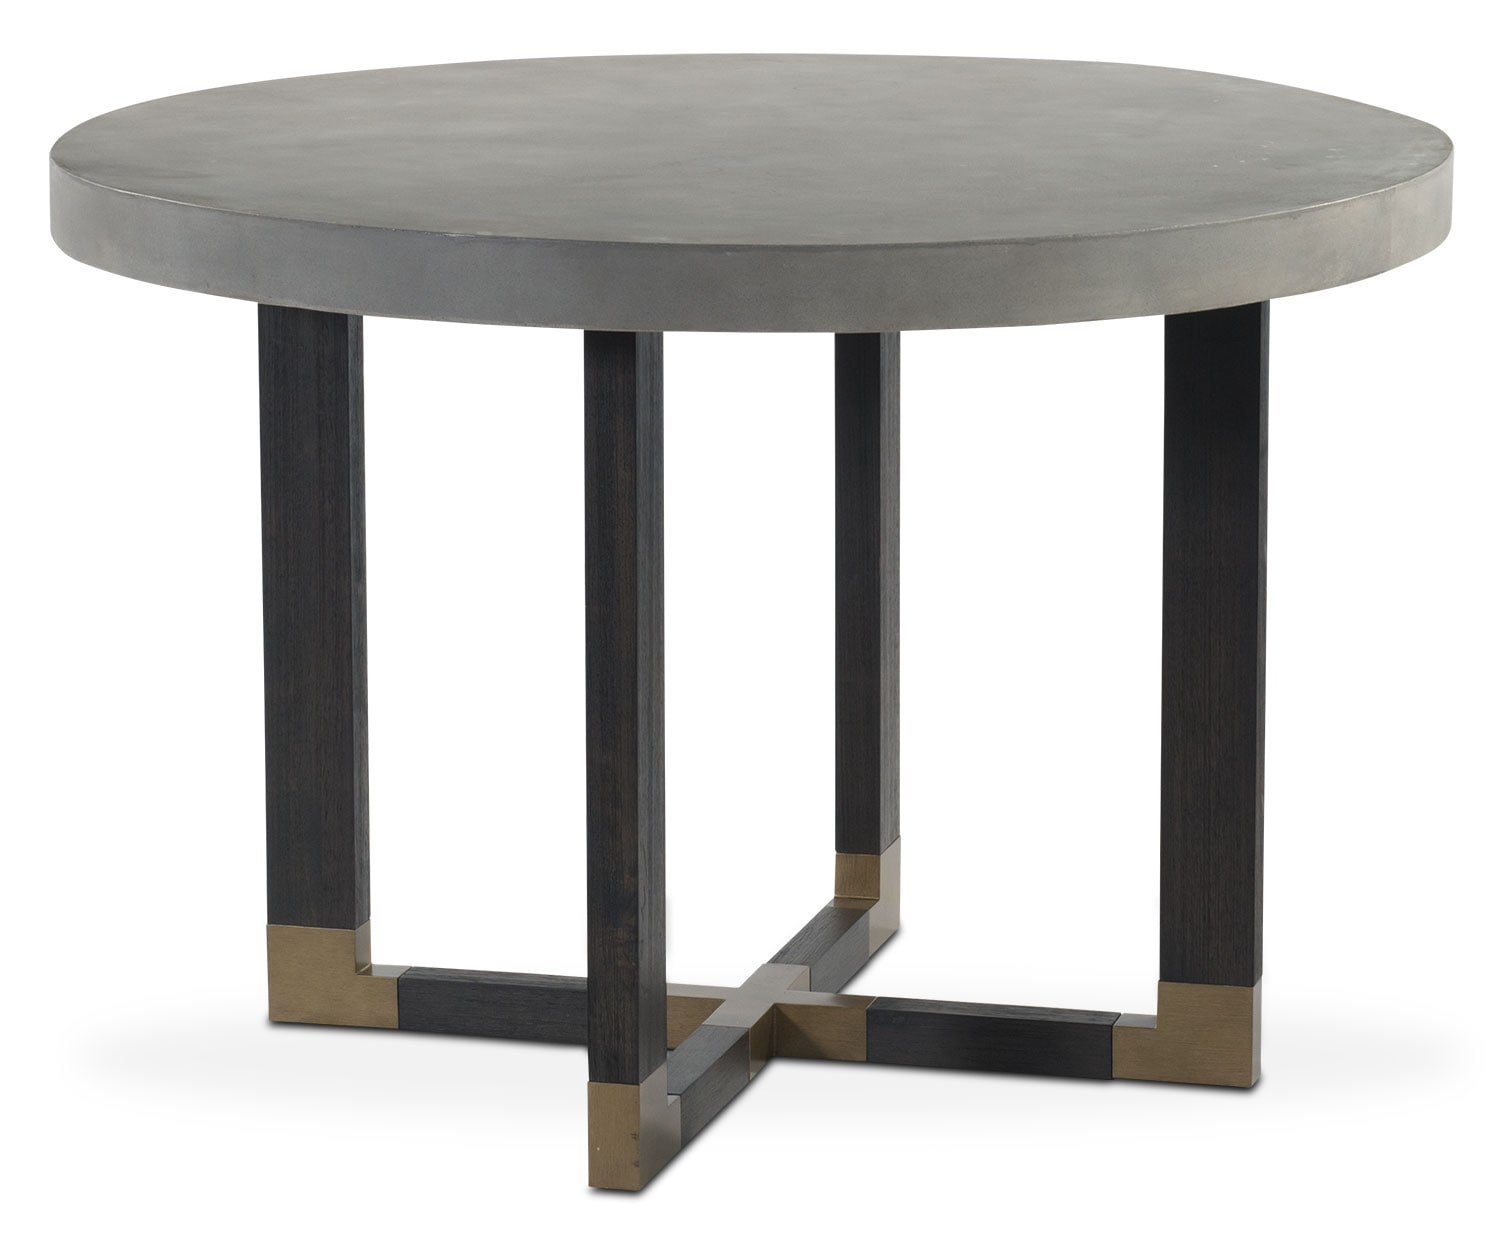 Shop All Dining Room Tables Value City Furniture : 516161 from www.valuecityfurniture.com size 1500 x 1249 jpeg 104kB